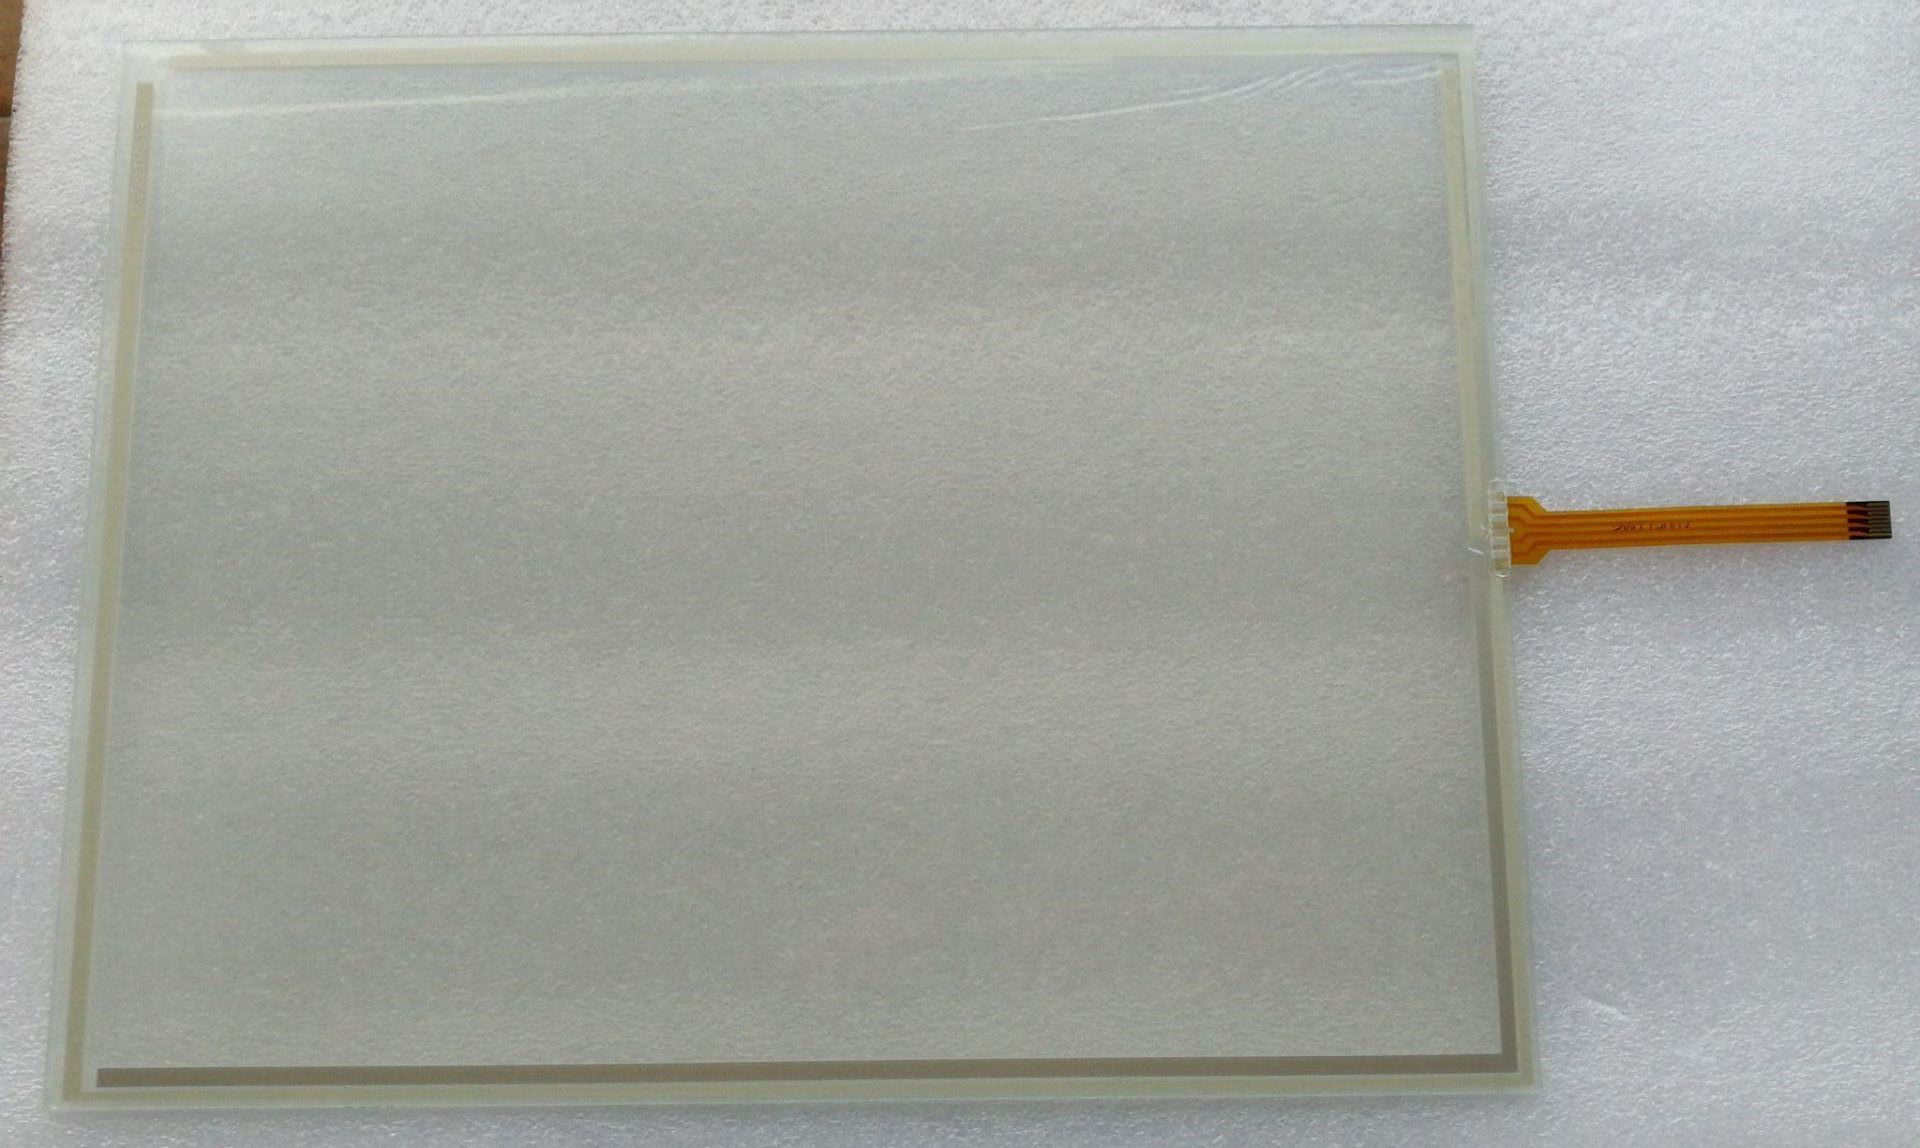 PS3701A T41 DU E66 Touch Glass Panel for HMI Panel repair do it yourself New Have